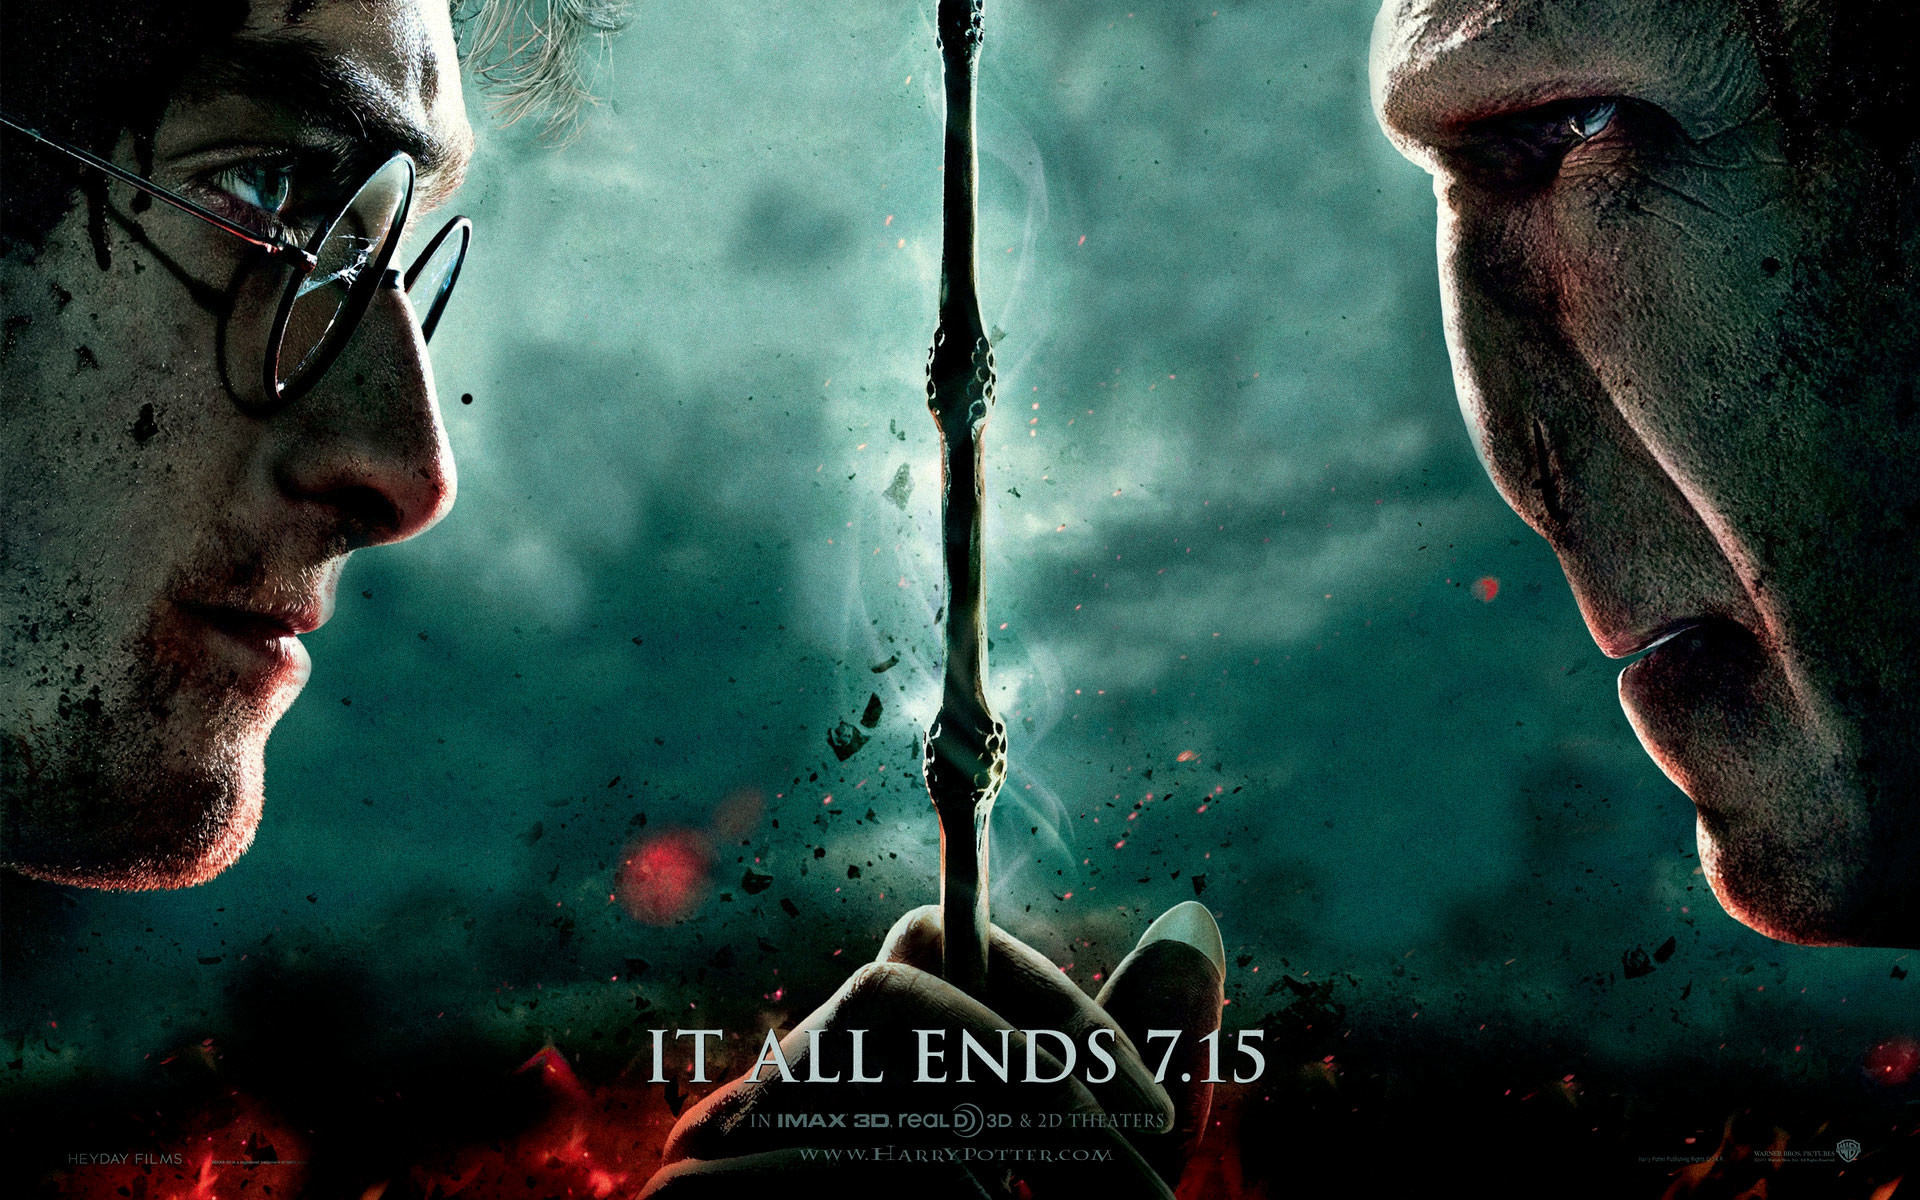 Harry Potter 7 Part 2 Wallpapers | HD Wallpapers